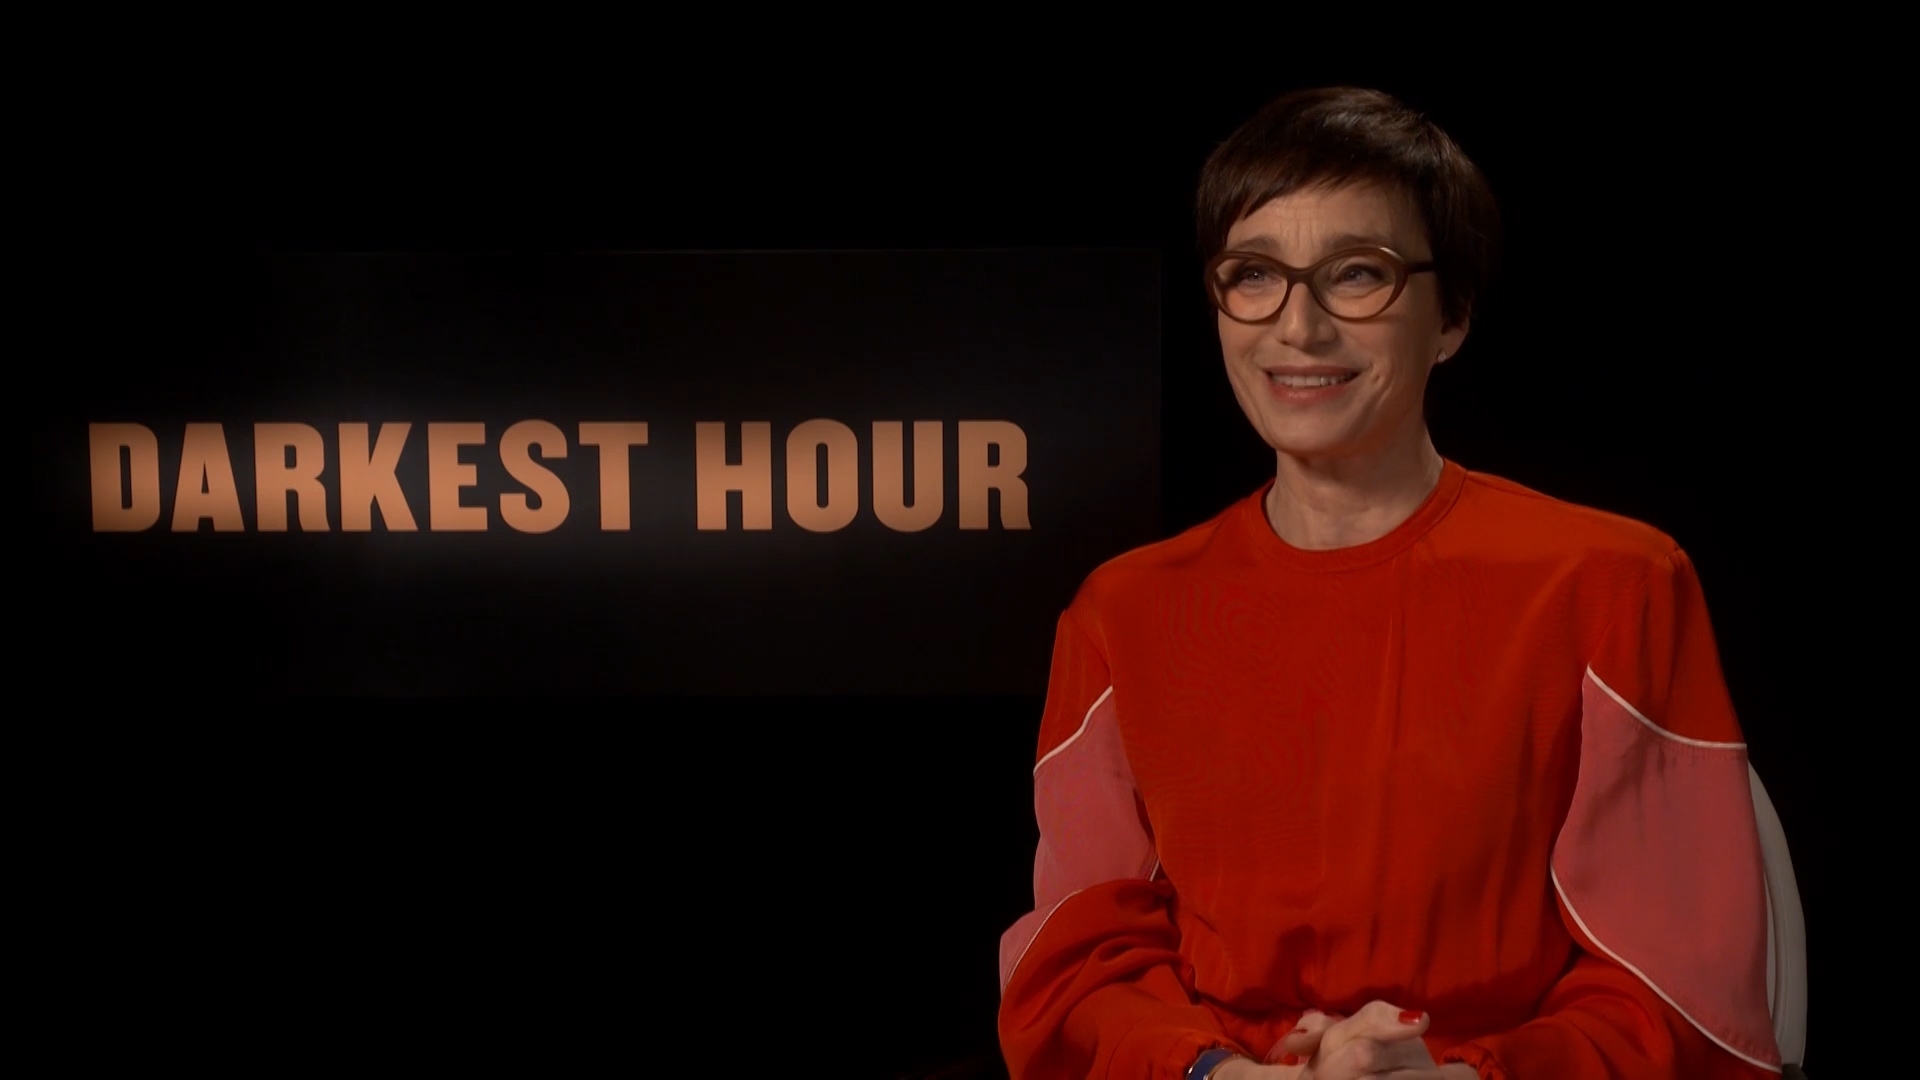 Kristin Scott Thomas Darkest hour